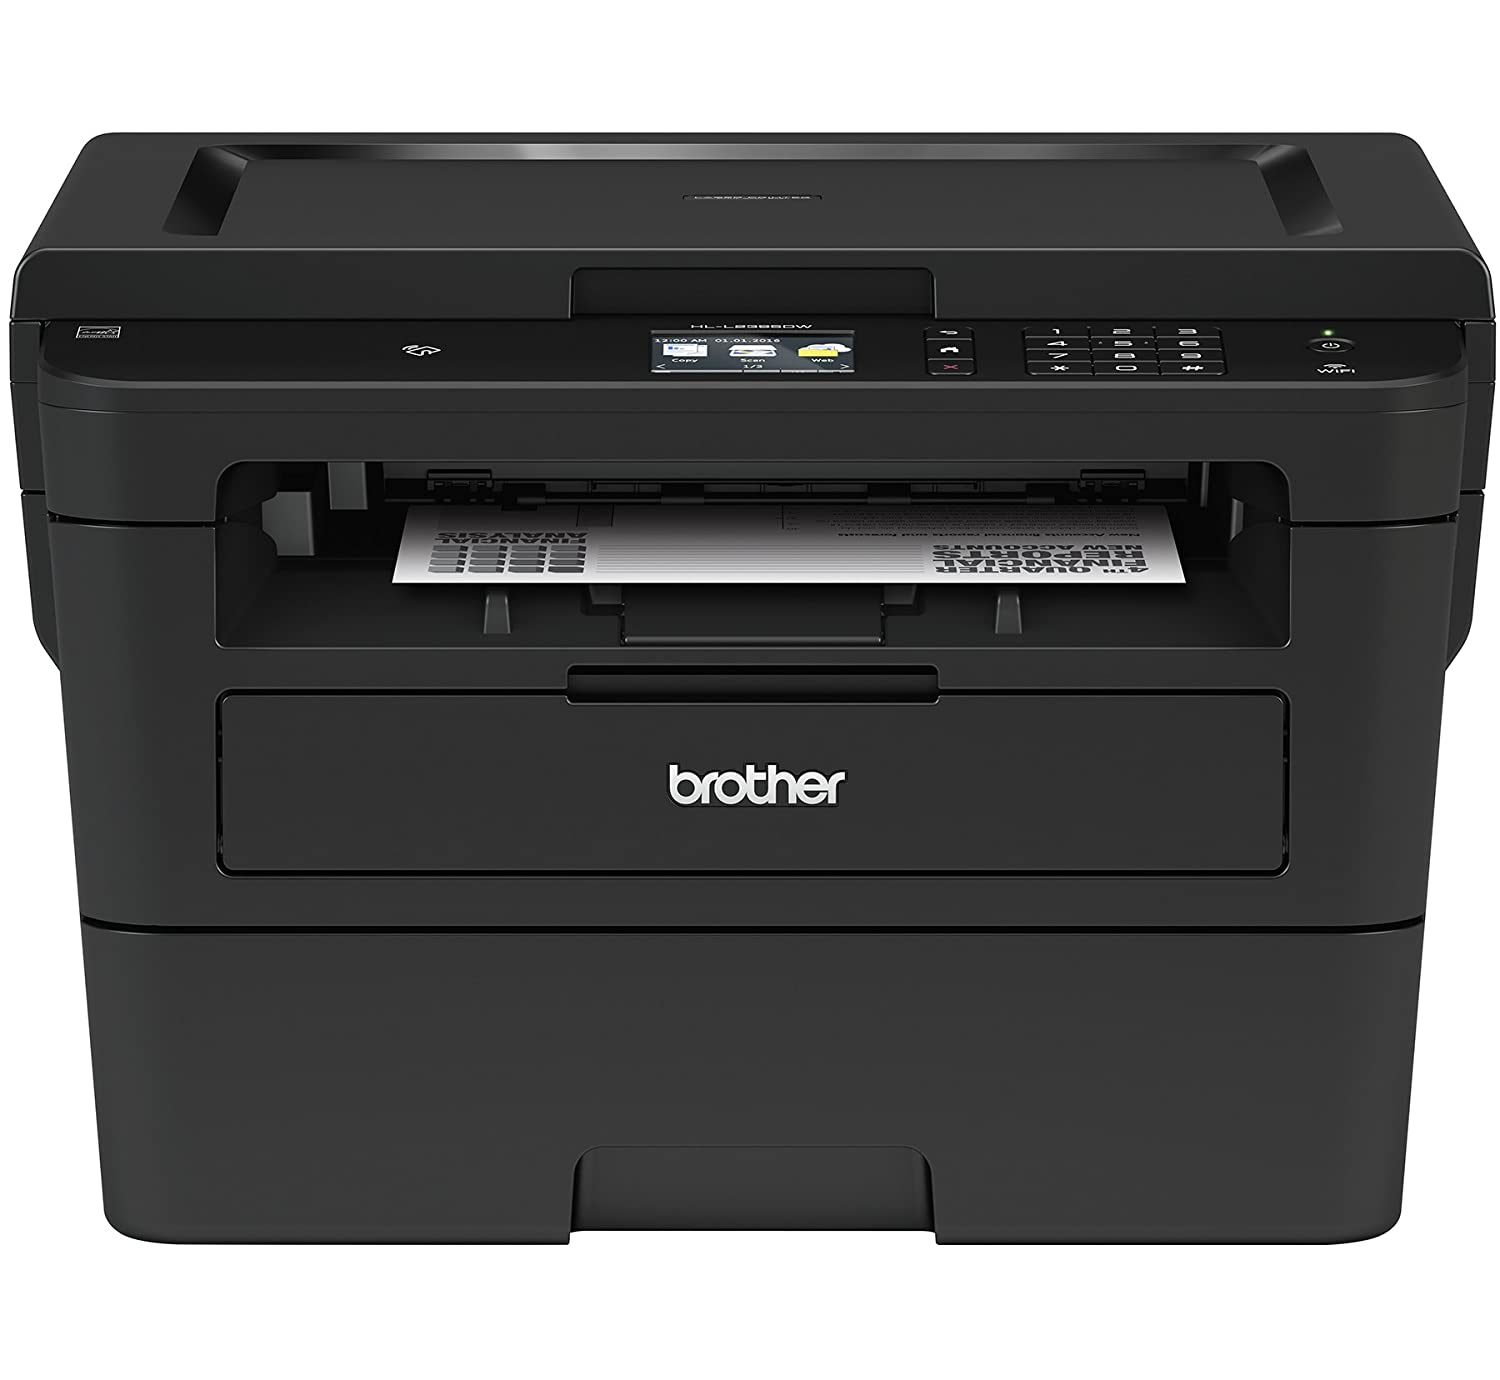 Top 9 best printers for Mac, iPad & iPhone (2020 Reviews & Buying Guide) 2